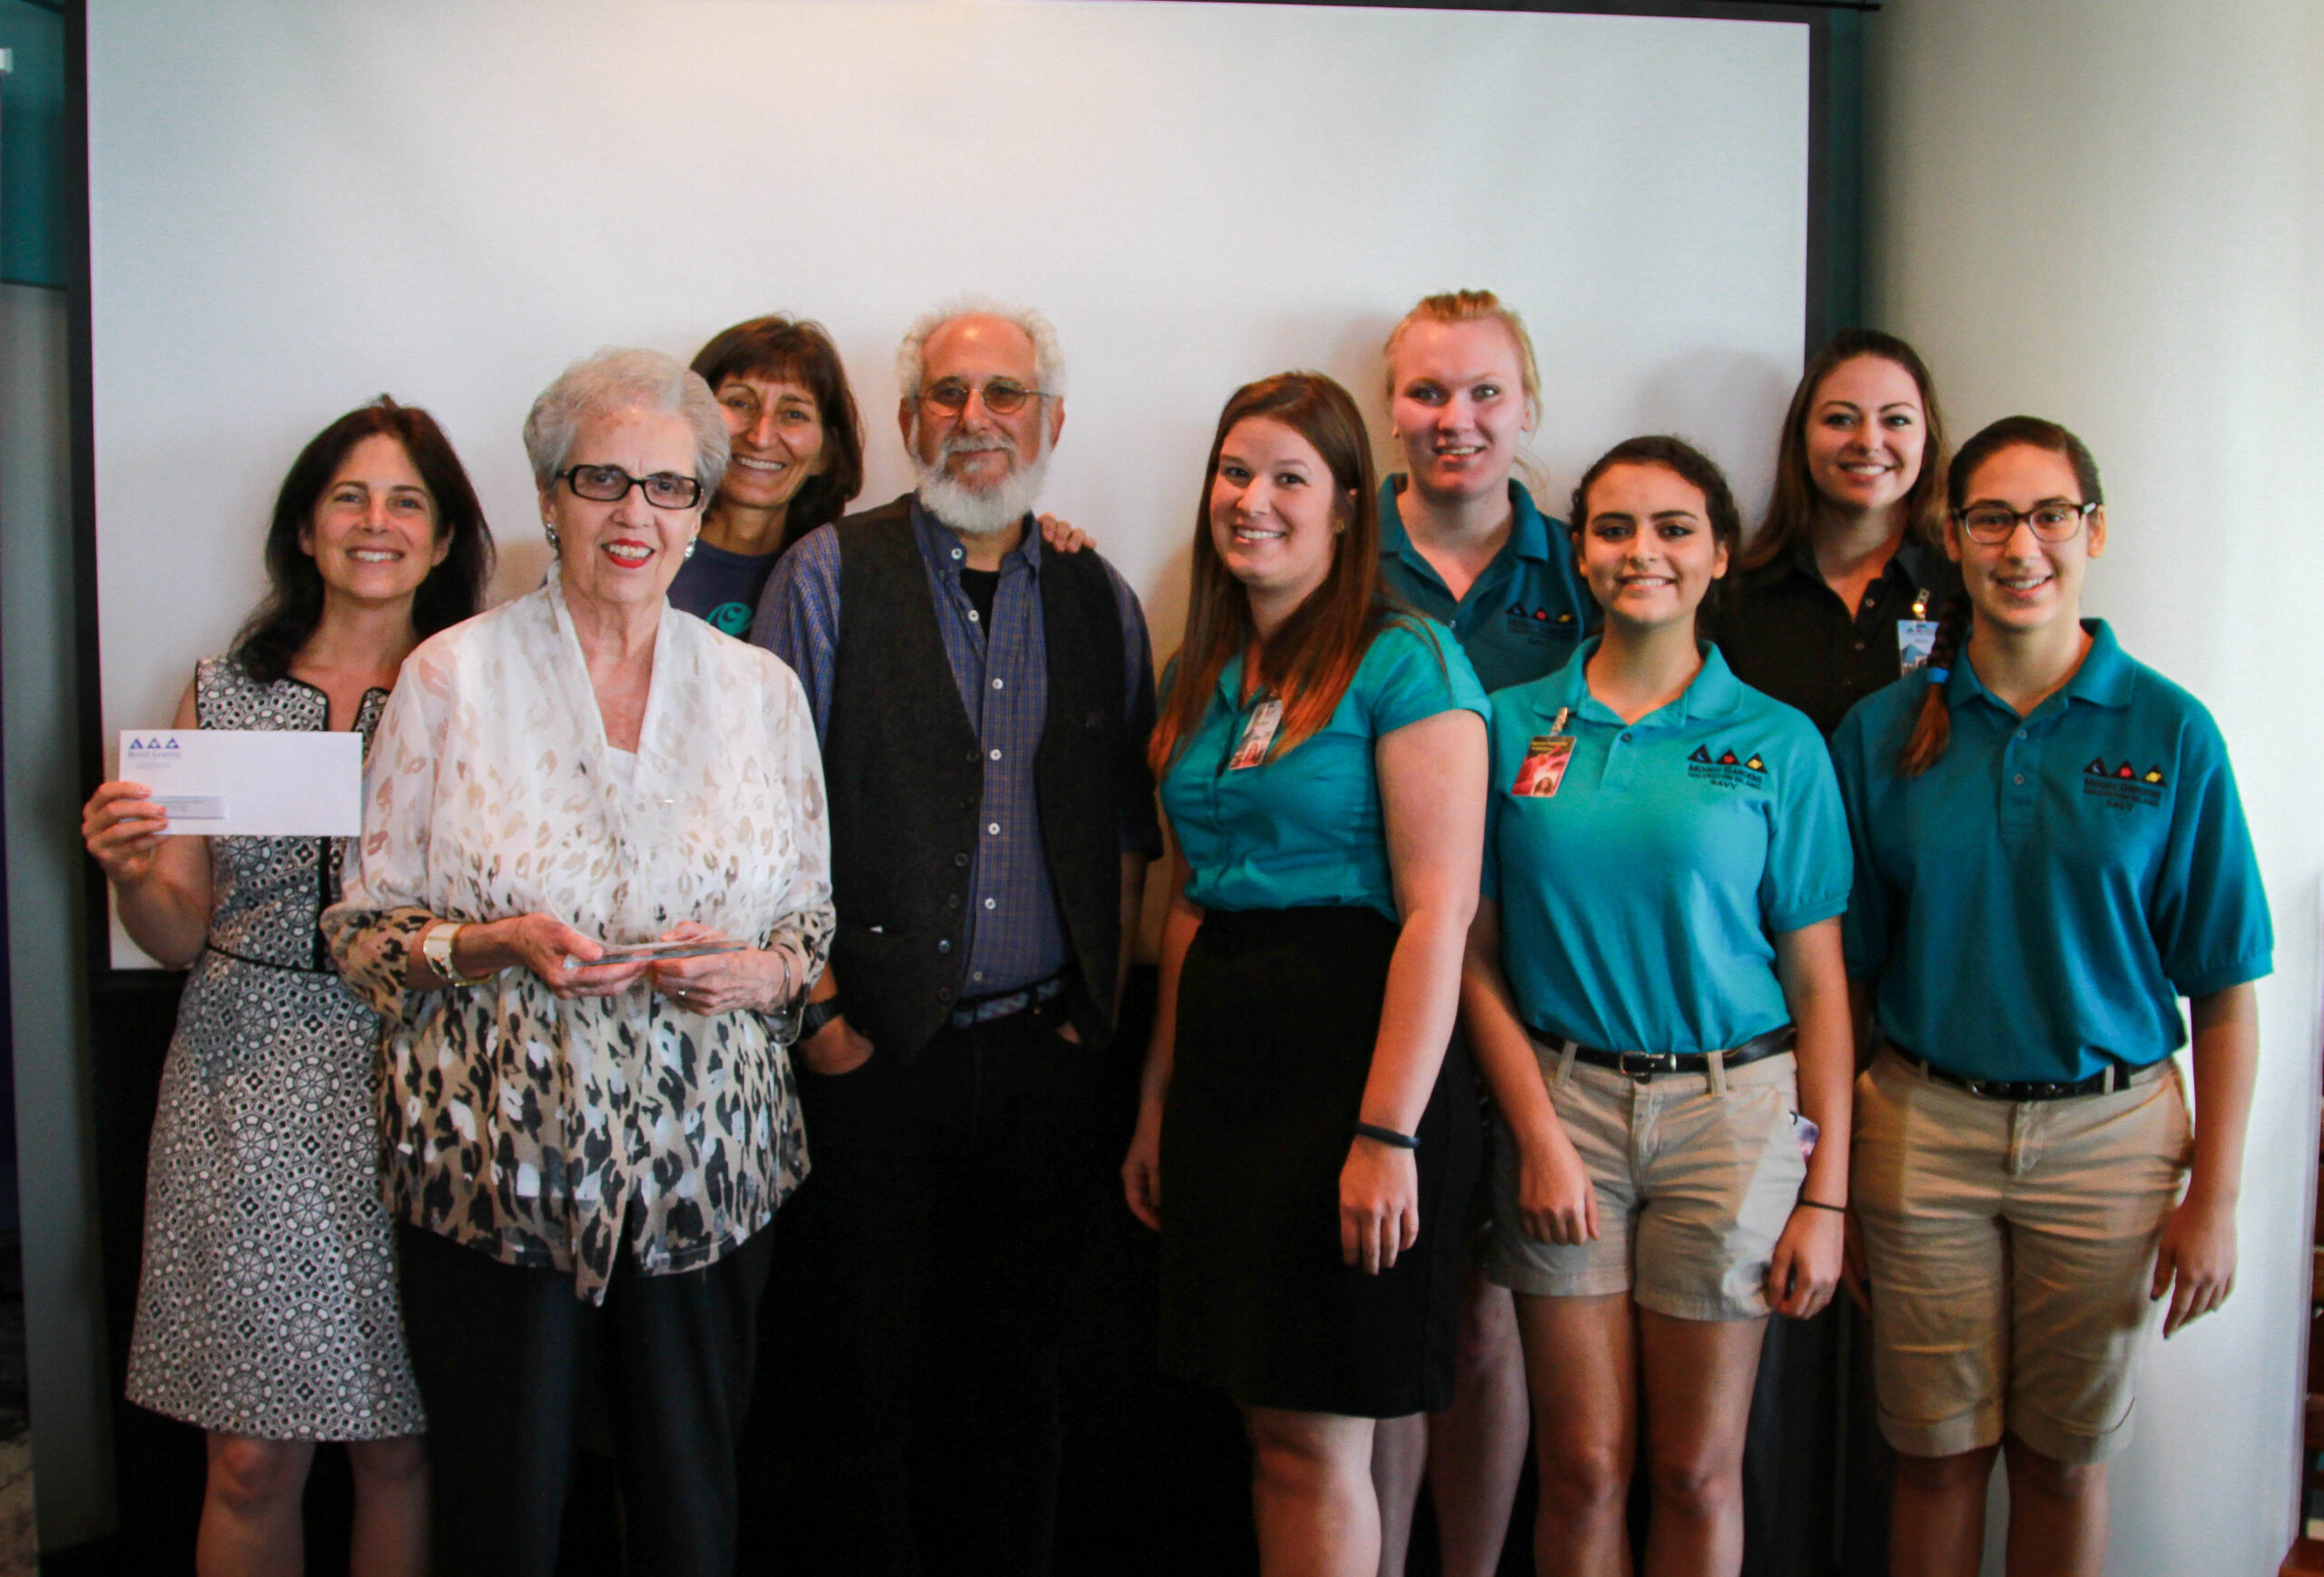 Sea Turtle Heroine, Carole Allen, Honored for Lifetime of Work with a Sea Turtle Celebration at Moody Gardens